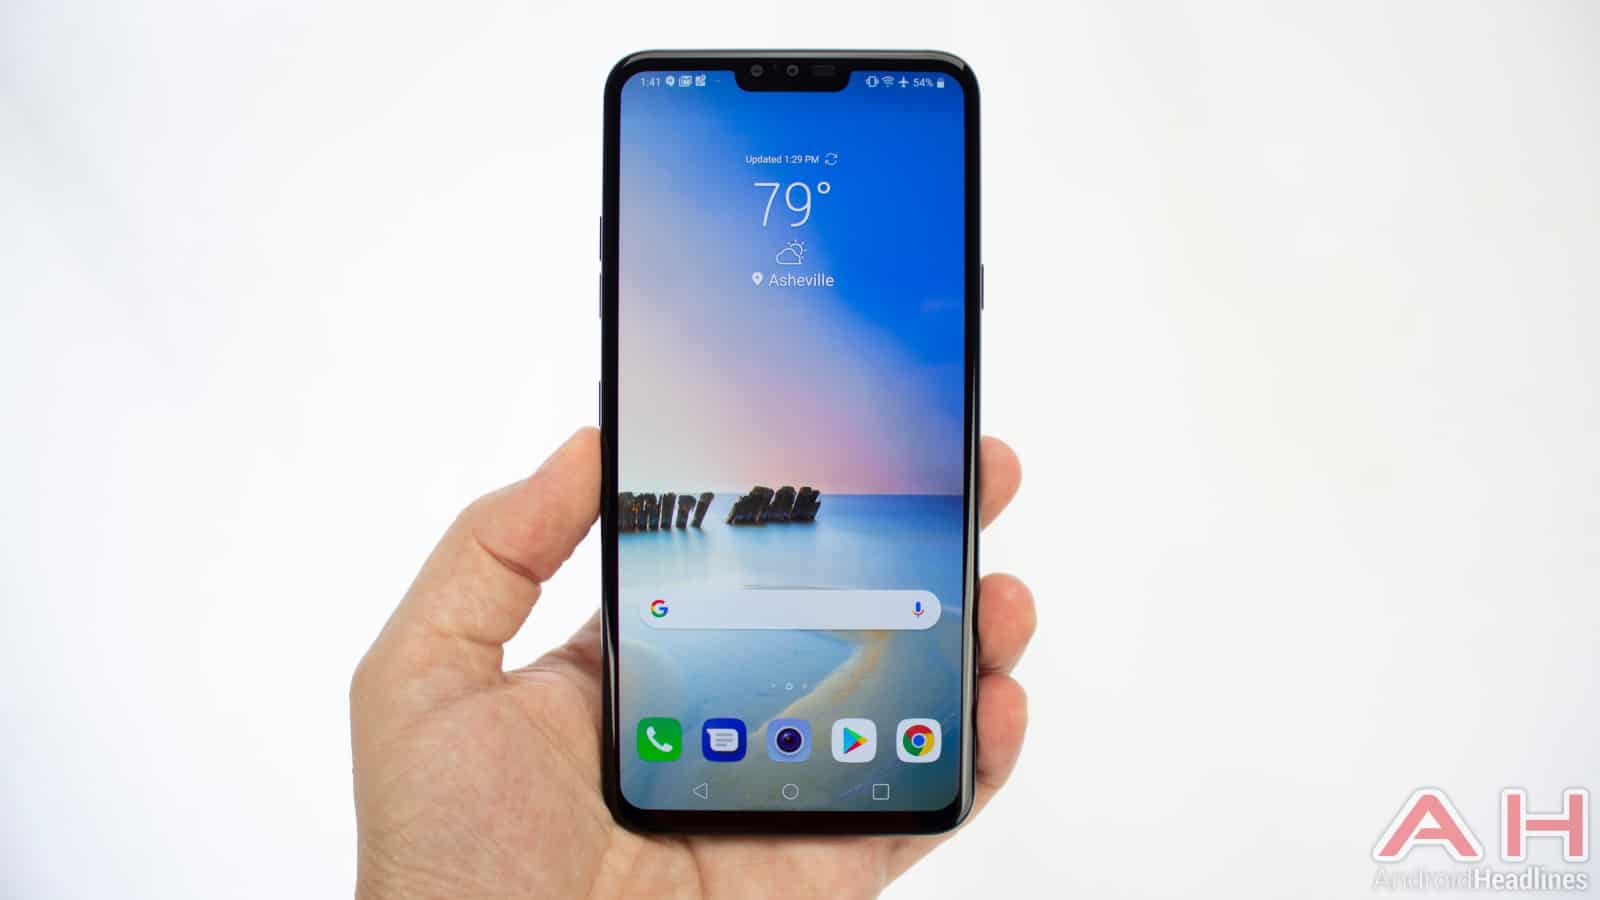 lg v40 thinq review a content creators dream come true android news rh androidheadlines com LG Revere 2 User Manual LG Revere 2 User Manual